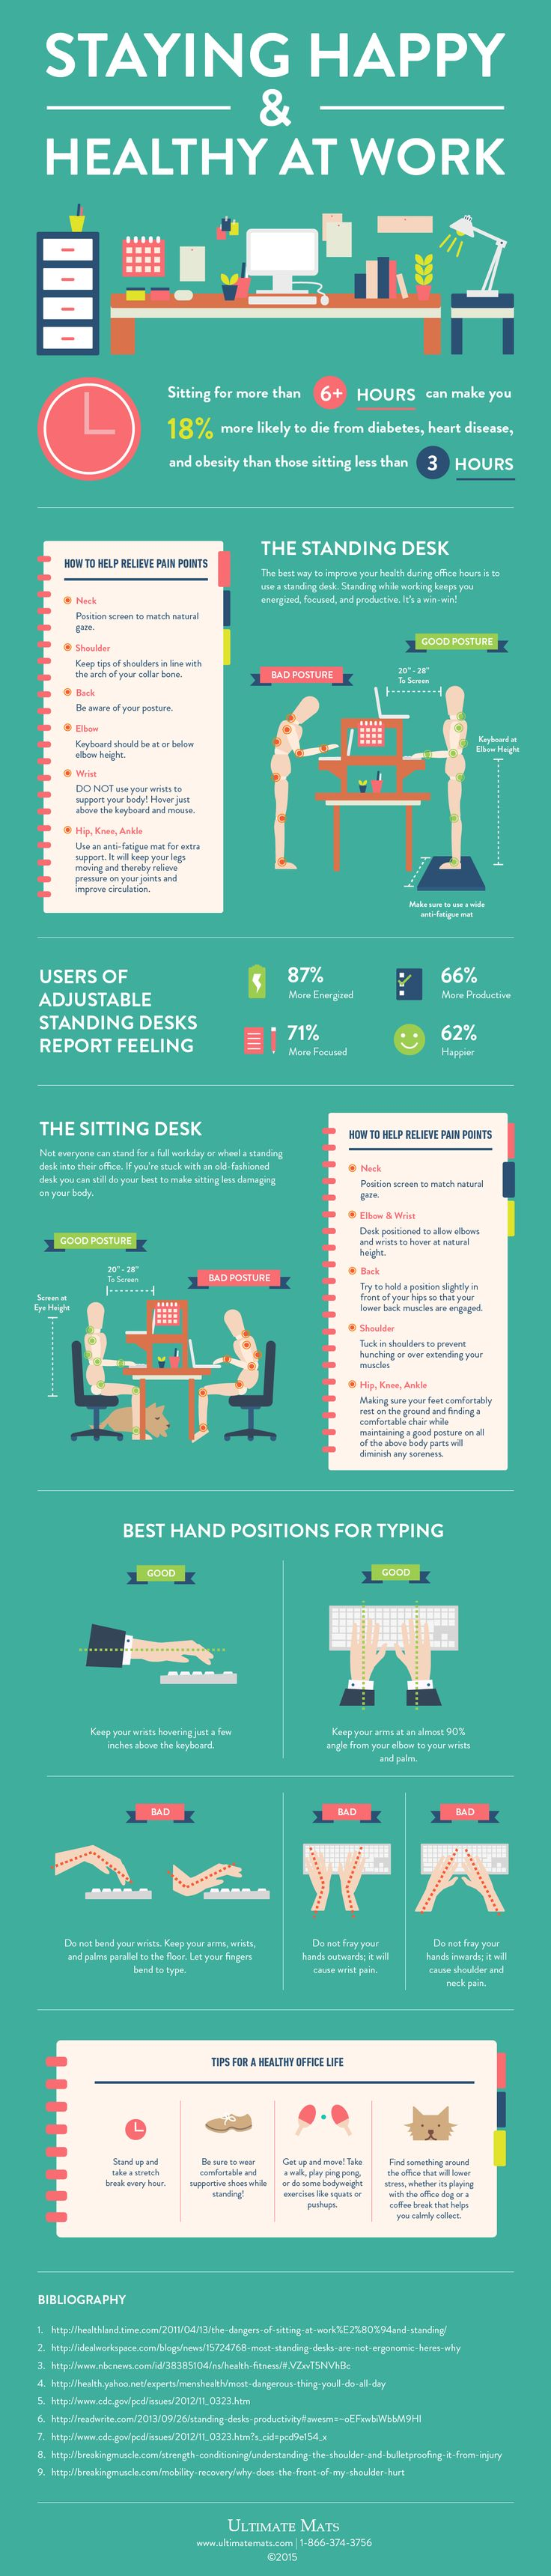 Top tips to staying stress free in the workplace infographic - Desk Ergonomics Posture Tips To Stay Happier Healthier At Work Infographic